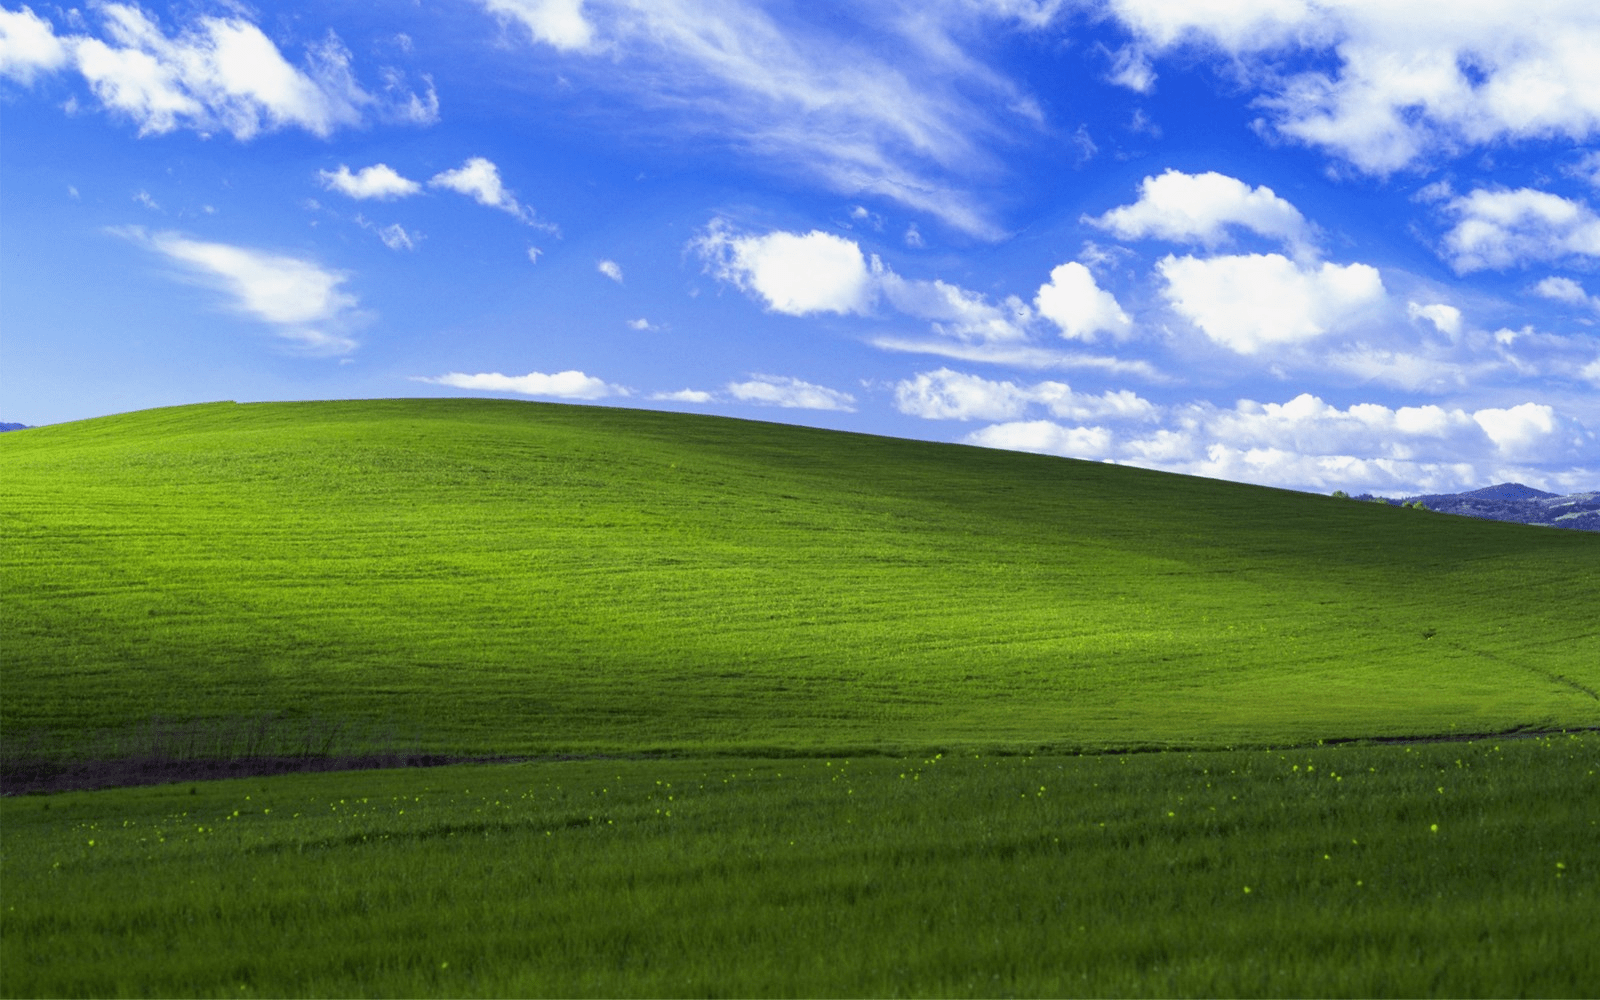 The iconic Windows XP green grass background image.